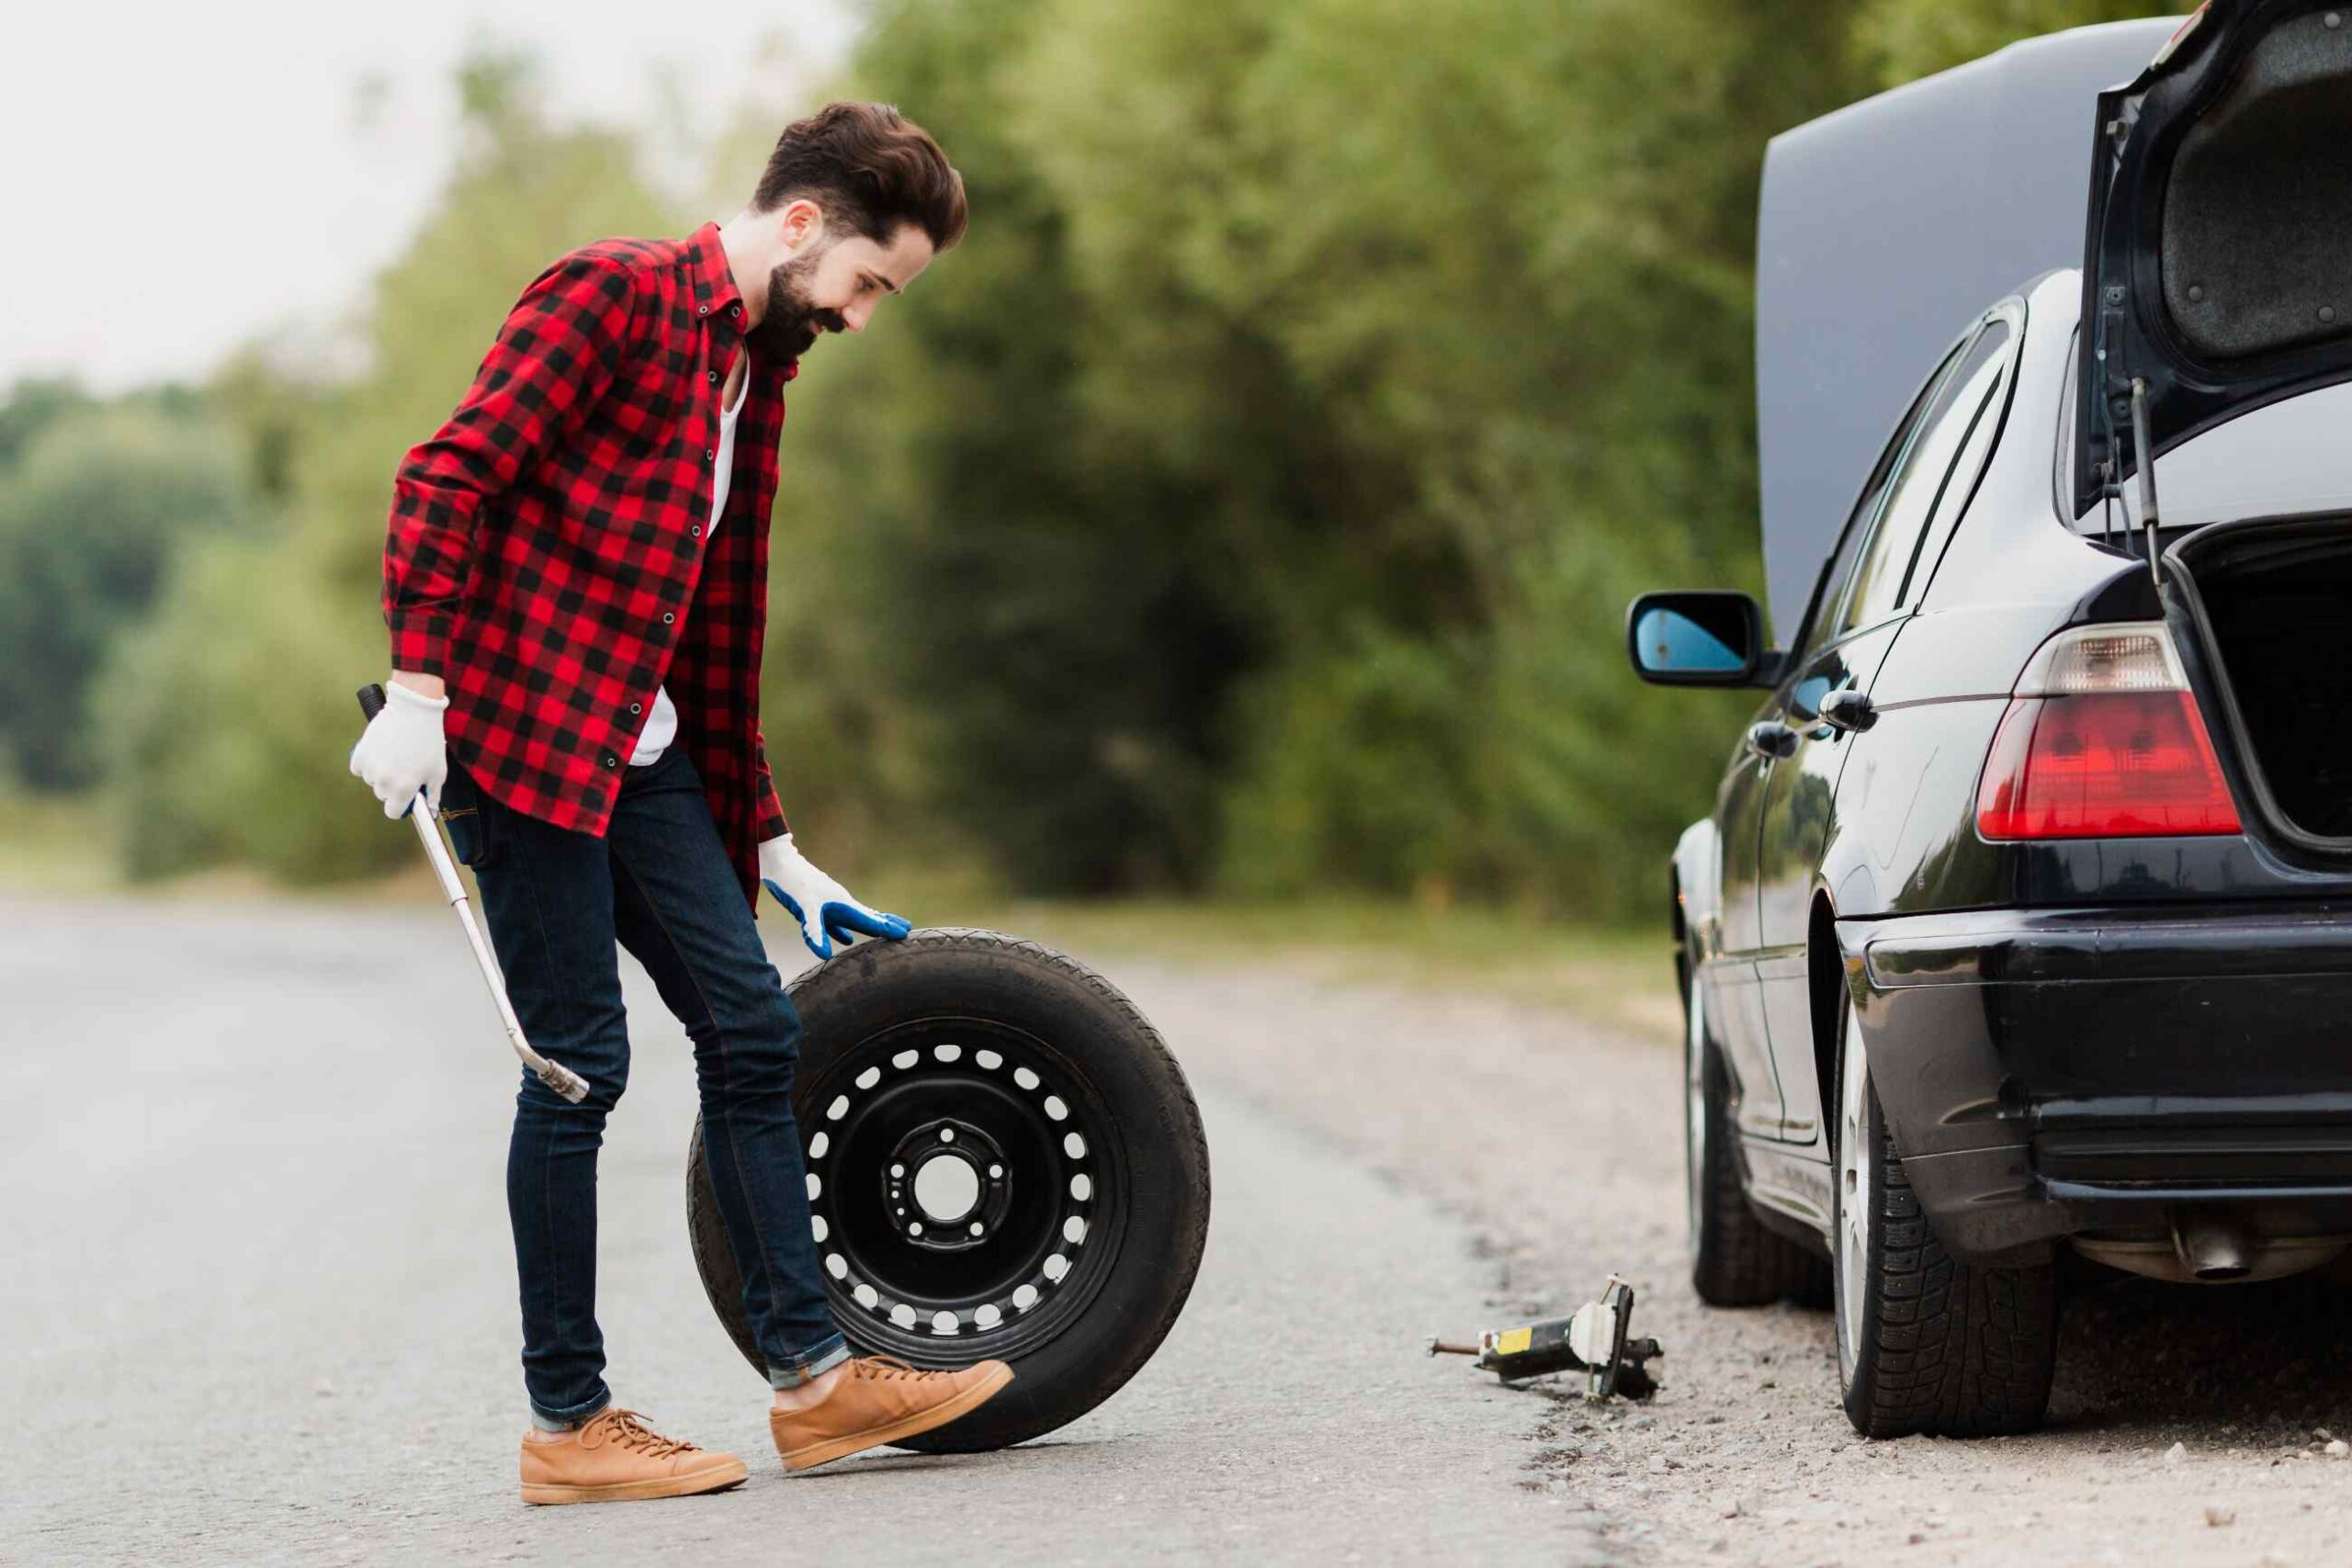 spare tire - Spare wheel for flat tire